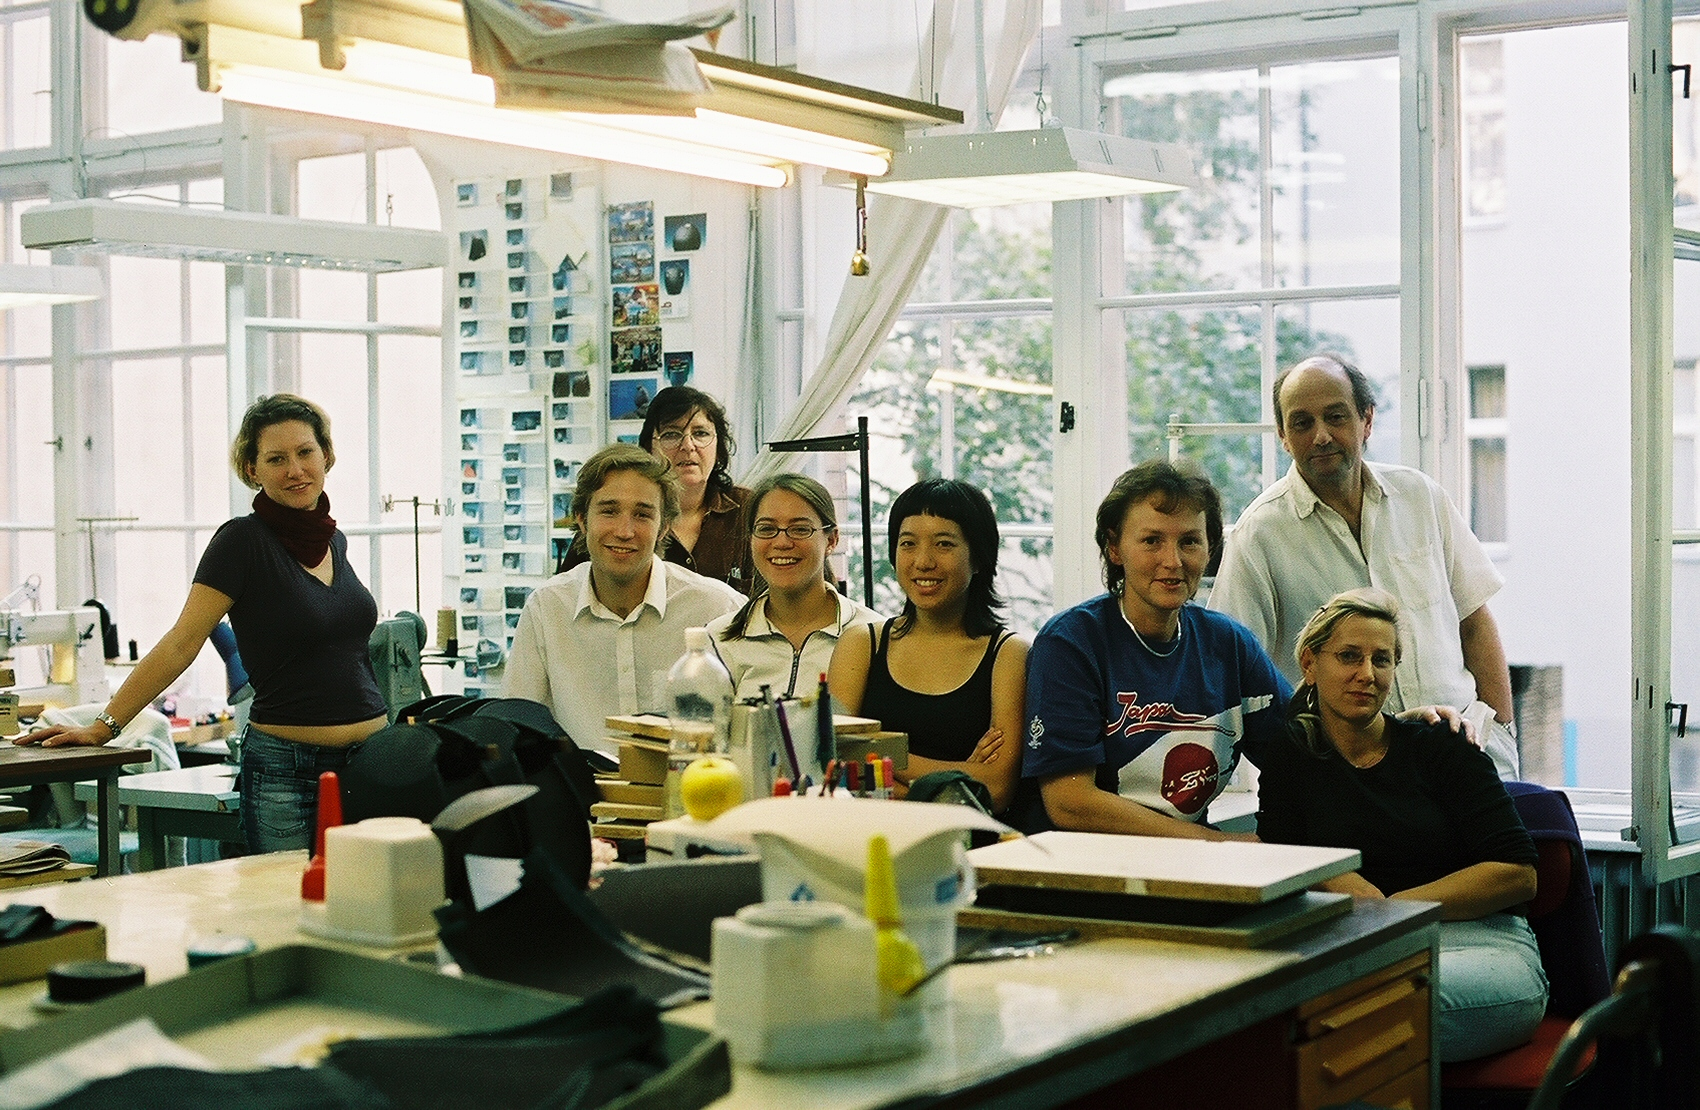 The Olbrish handbag workshop in Kreuzberg, Berlin, has been producing architecturally-inspired handbags since 1983. All parts of the business take place under one roof—office, product design, production, inventory, and distribution. It was a great place to work and learn.